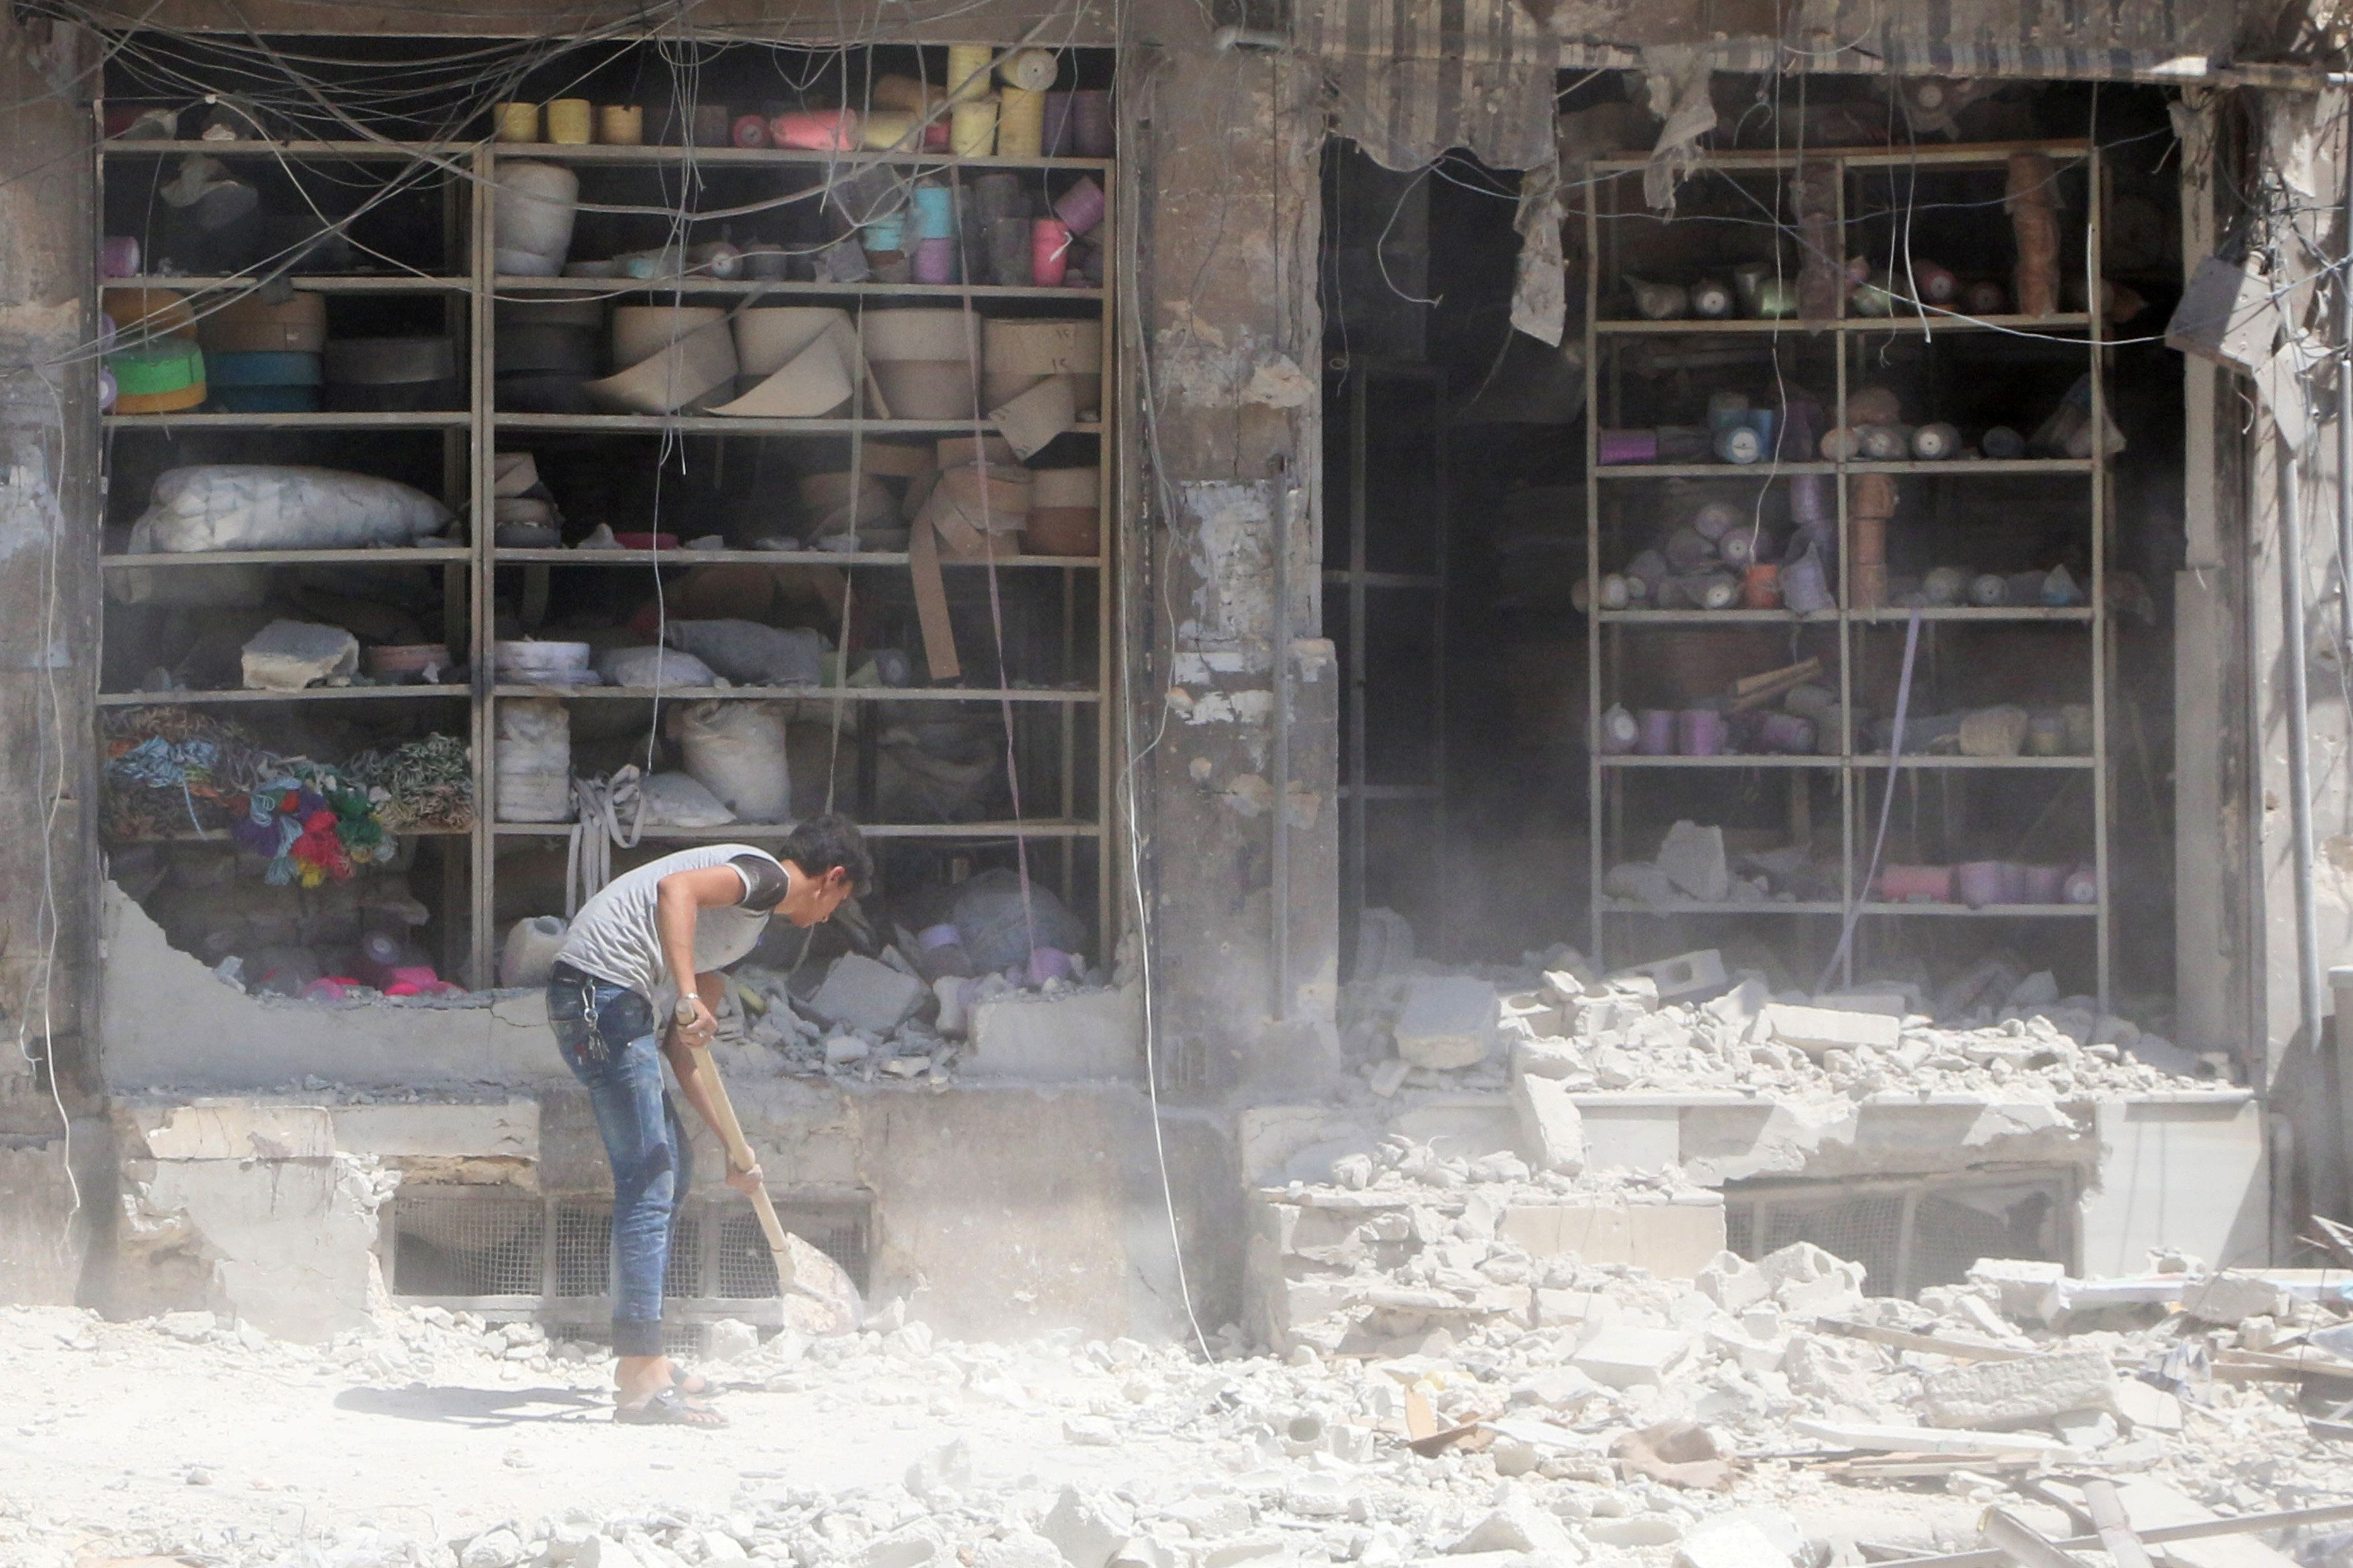 """Syrian rebels are welcominga proposed weekly ceasefire to """"staunch the blood of Syrians"""" and allow """"the arrival of aid"""